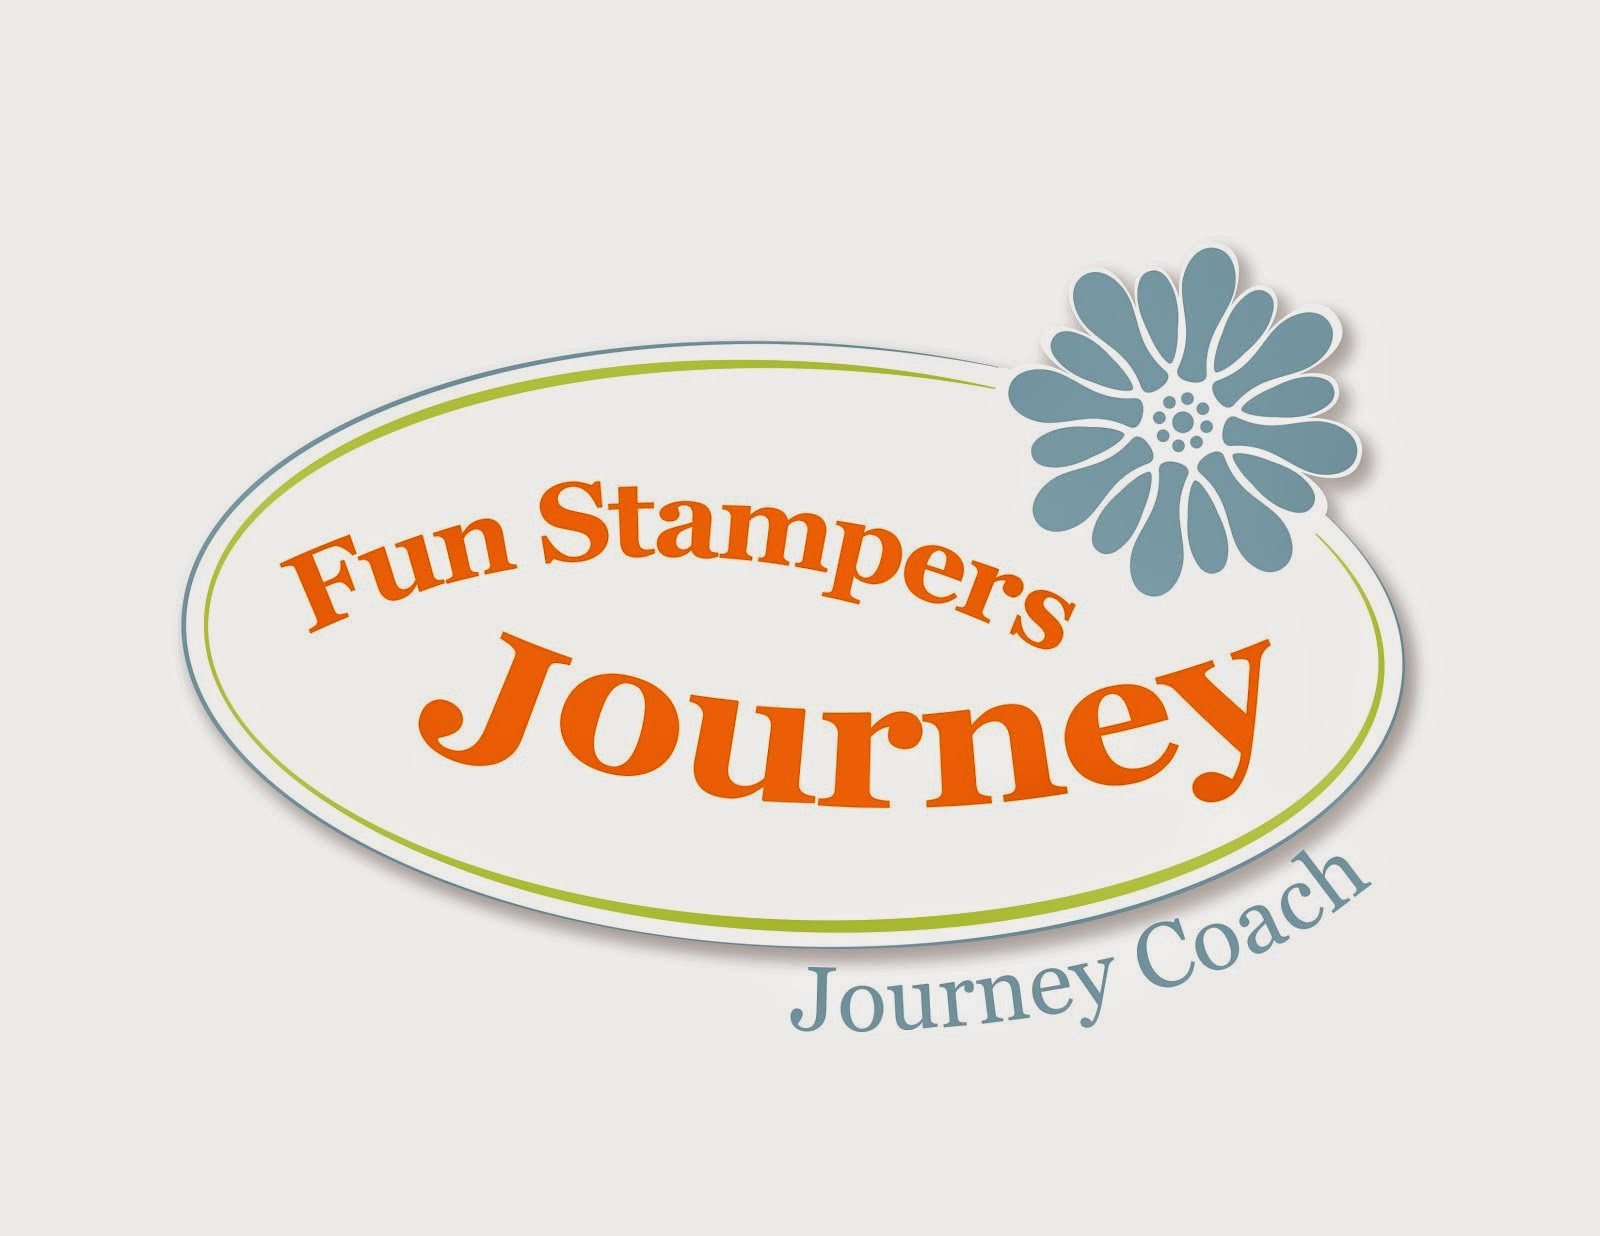 Have you checked out Fun Stampers Journey?